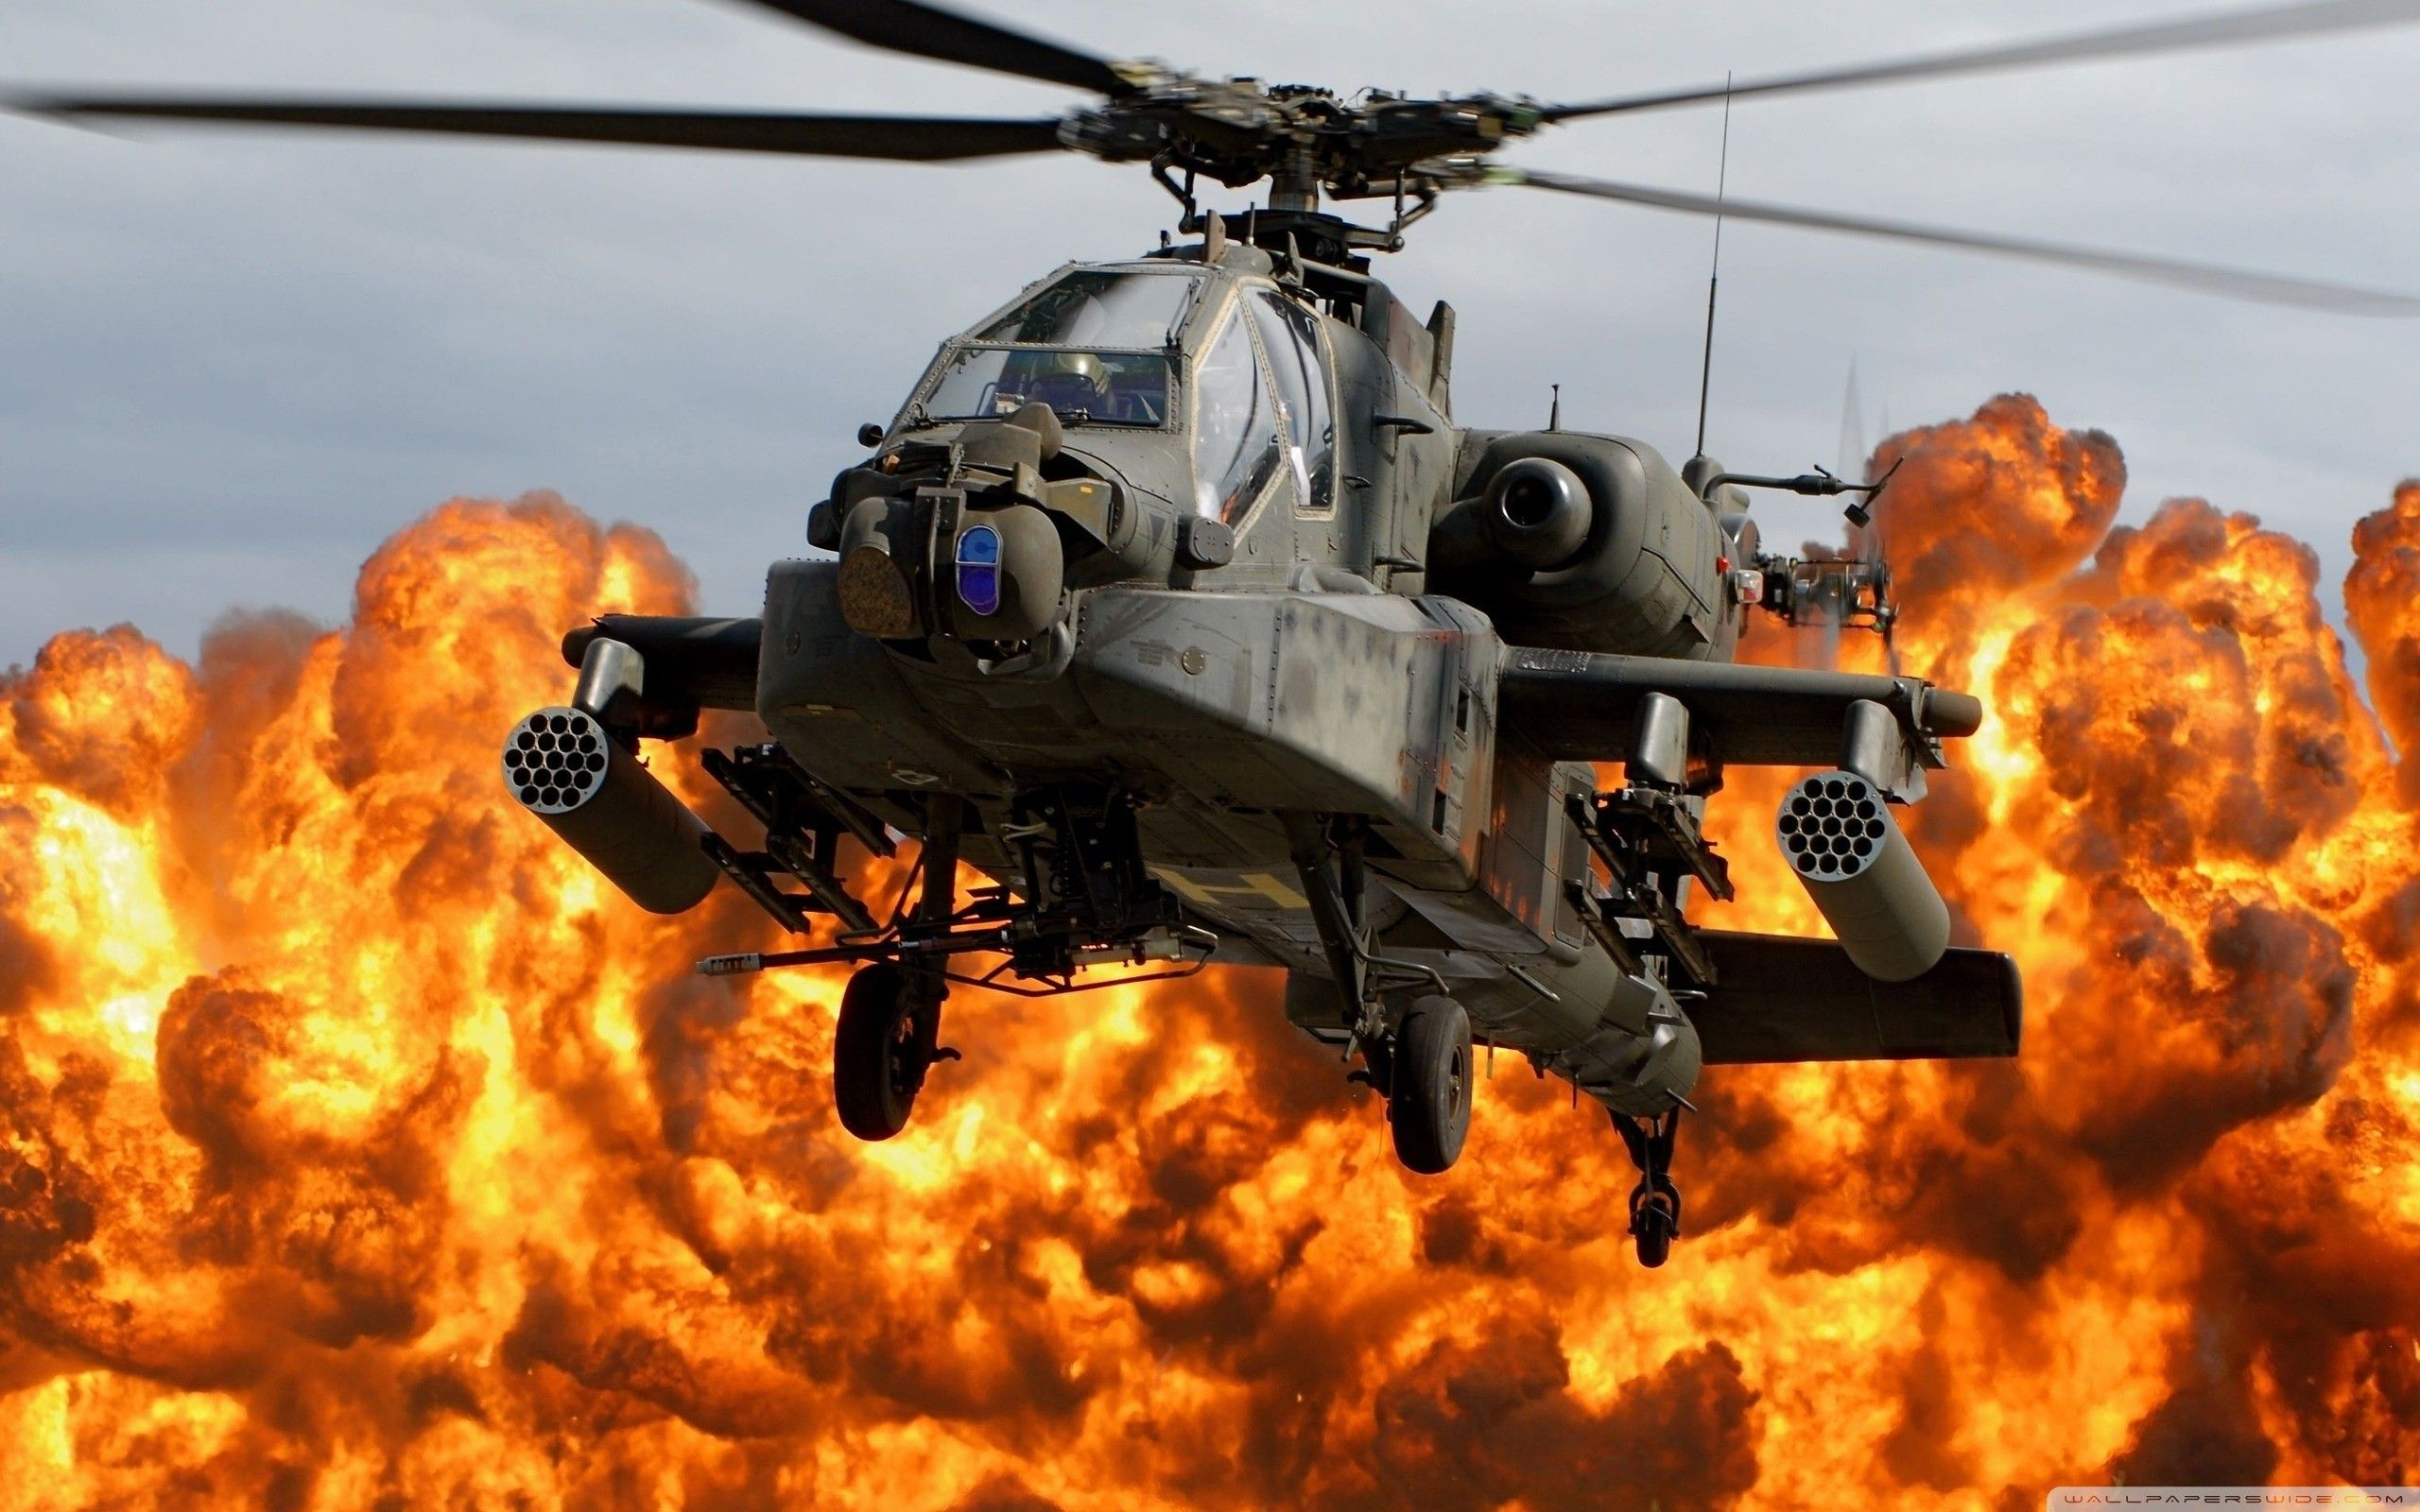 Military Helicopter Wallpapers Top Free Military Helicopter Backgrounds Wallpaperaccess